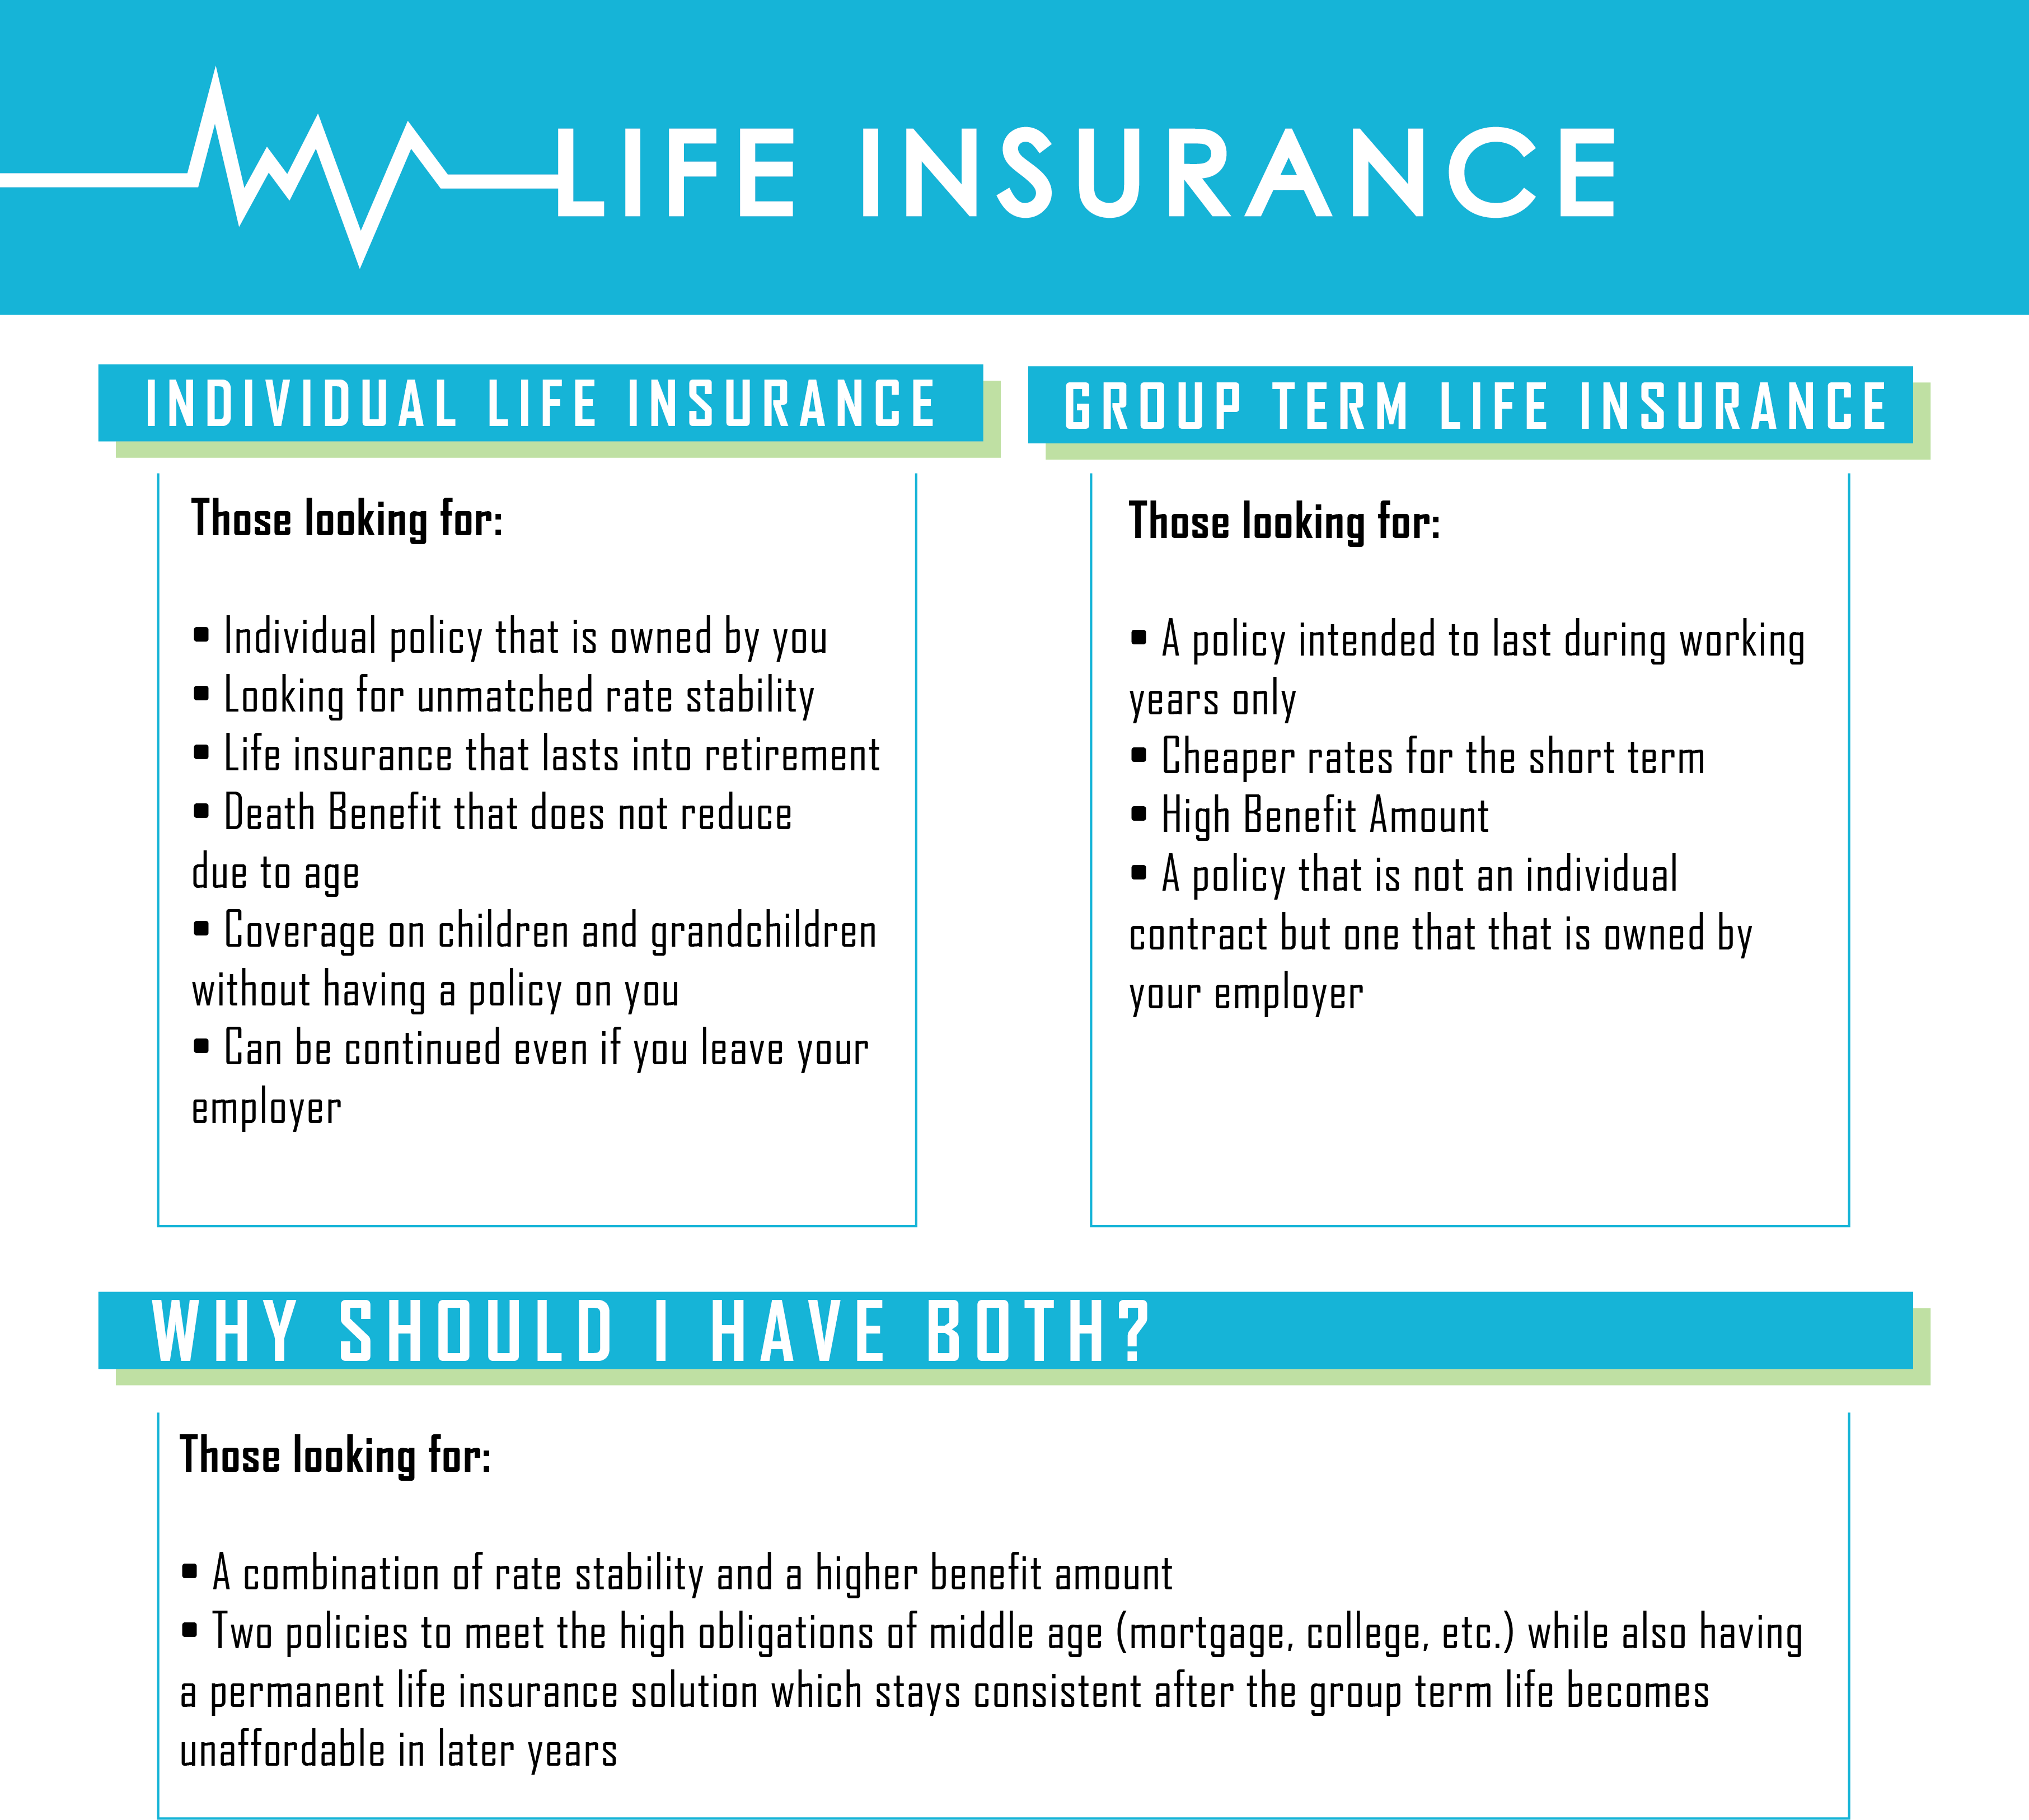 Individual Life Insurance vs. Group Term Life Insurance